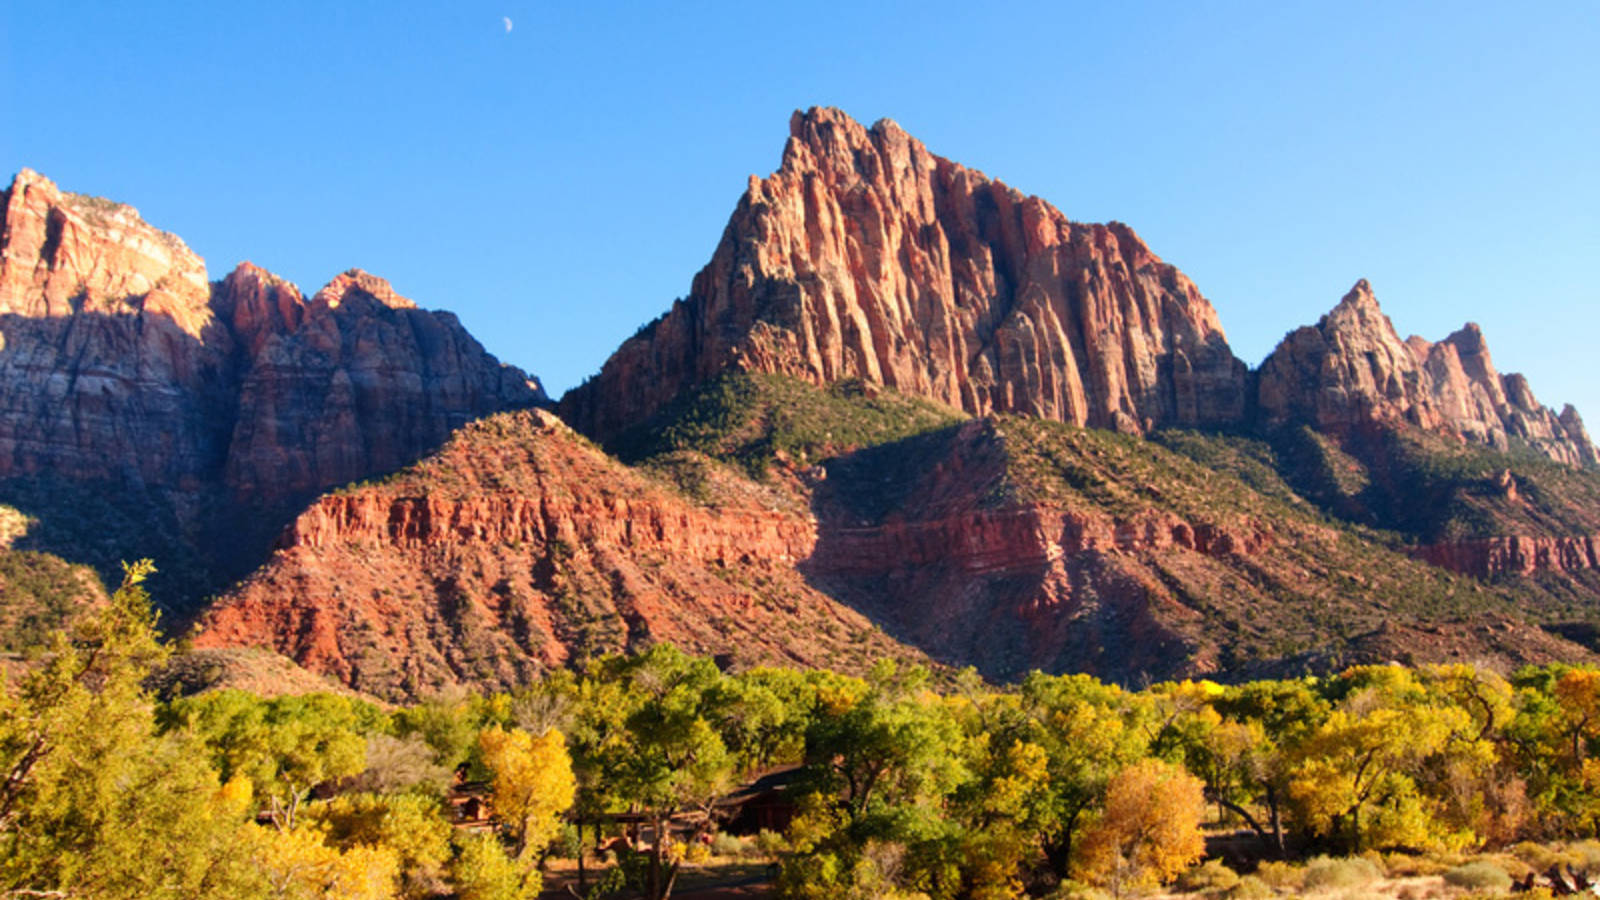 Fall Aspens Wallpaper The 10 Best Places To See Fall Foliage 183 National Parks